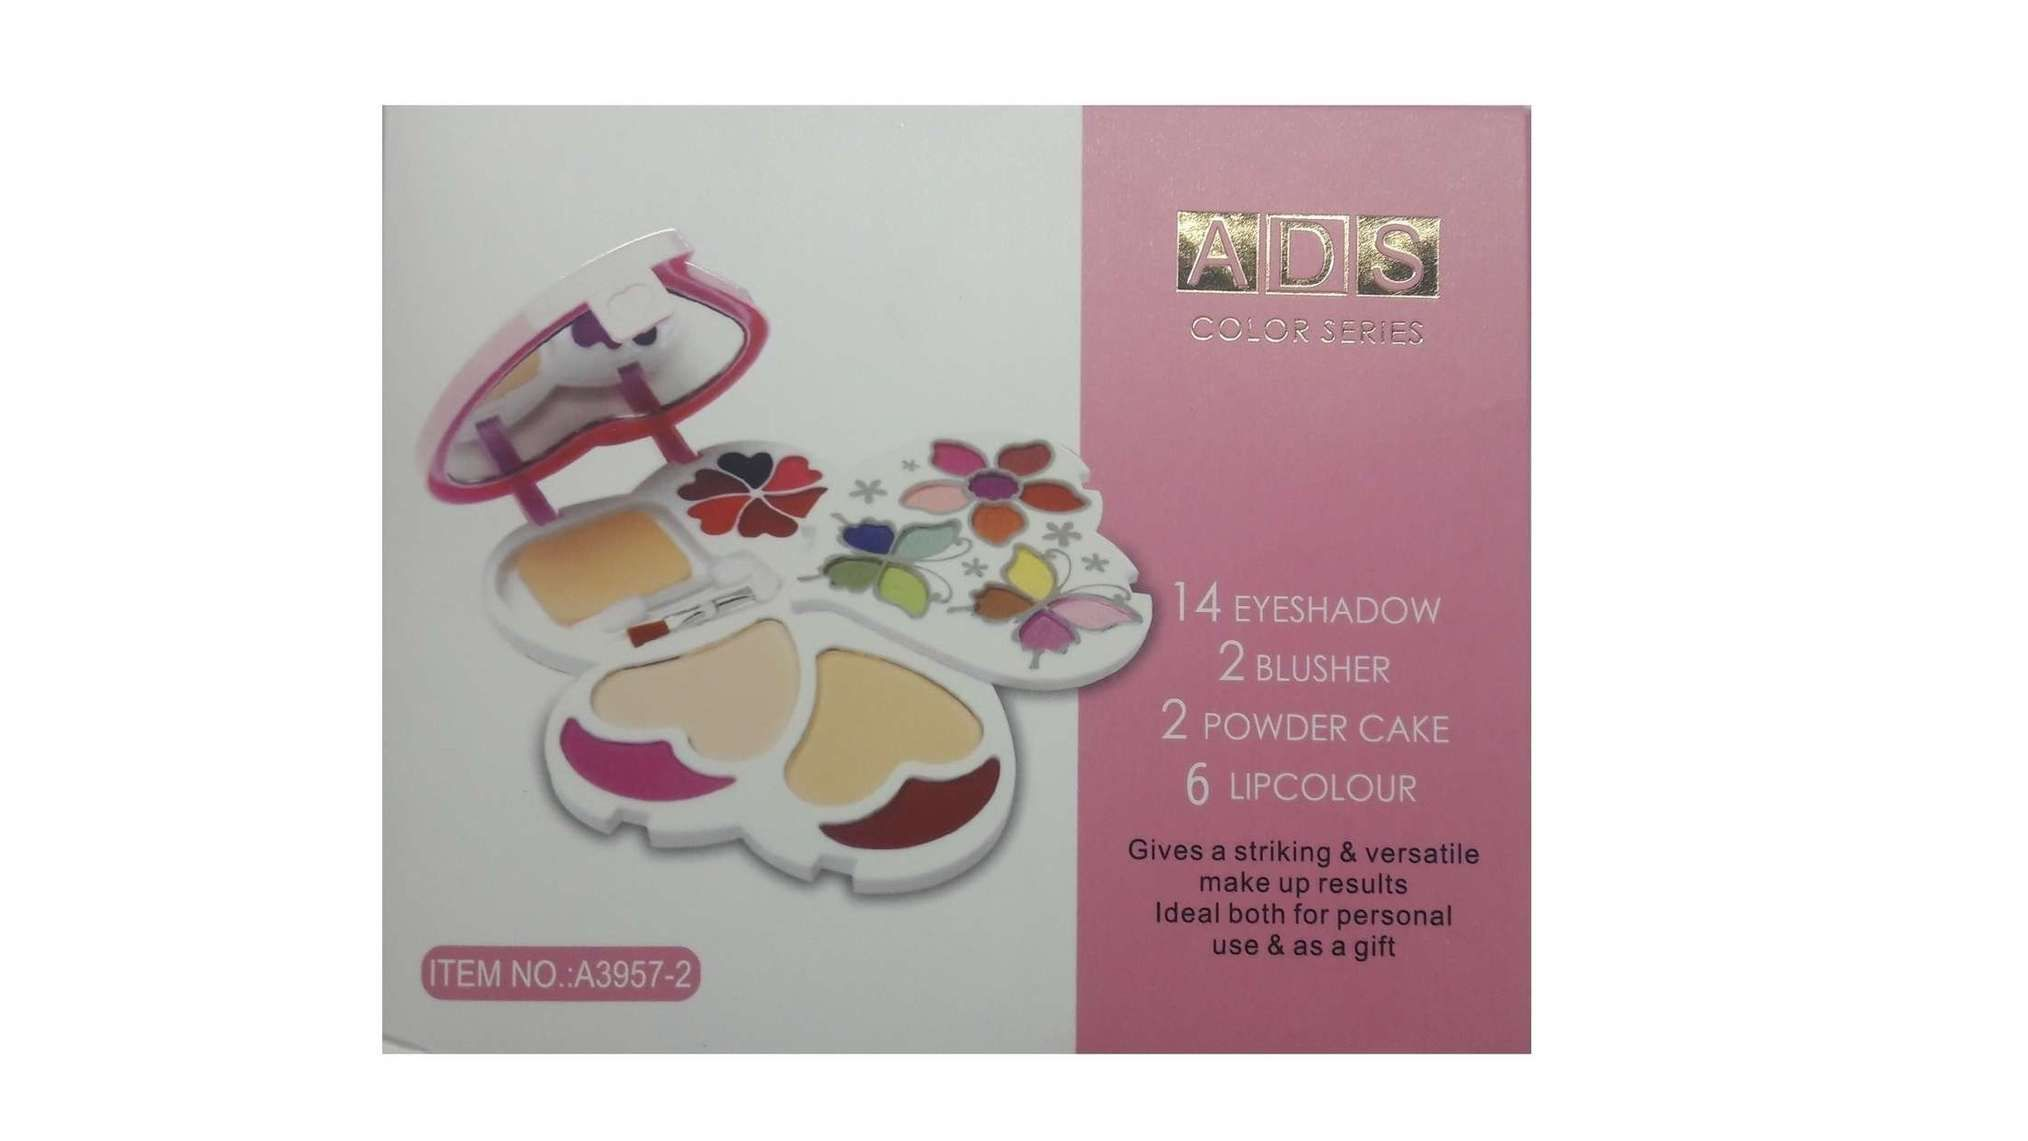 Ads Makeup-kit With 14 Eye Shado 2 Blusher And 2 Compact Powder And 6 Lip Color